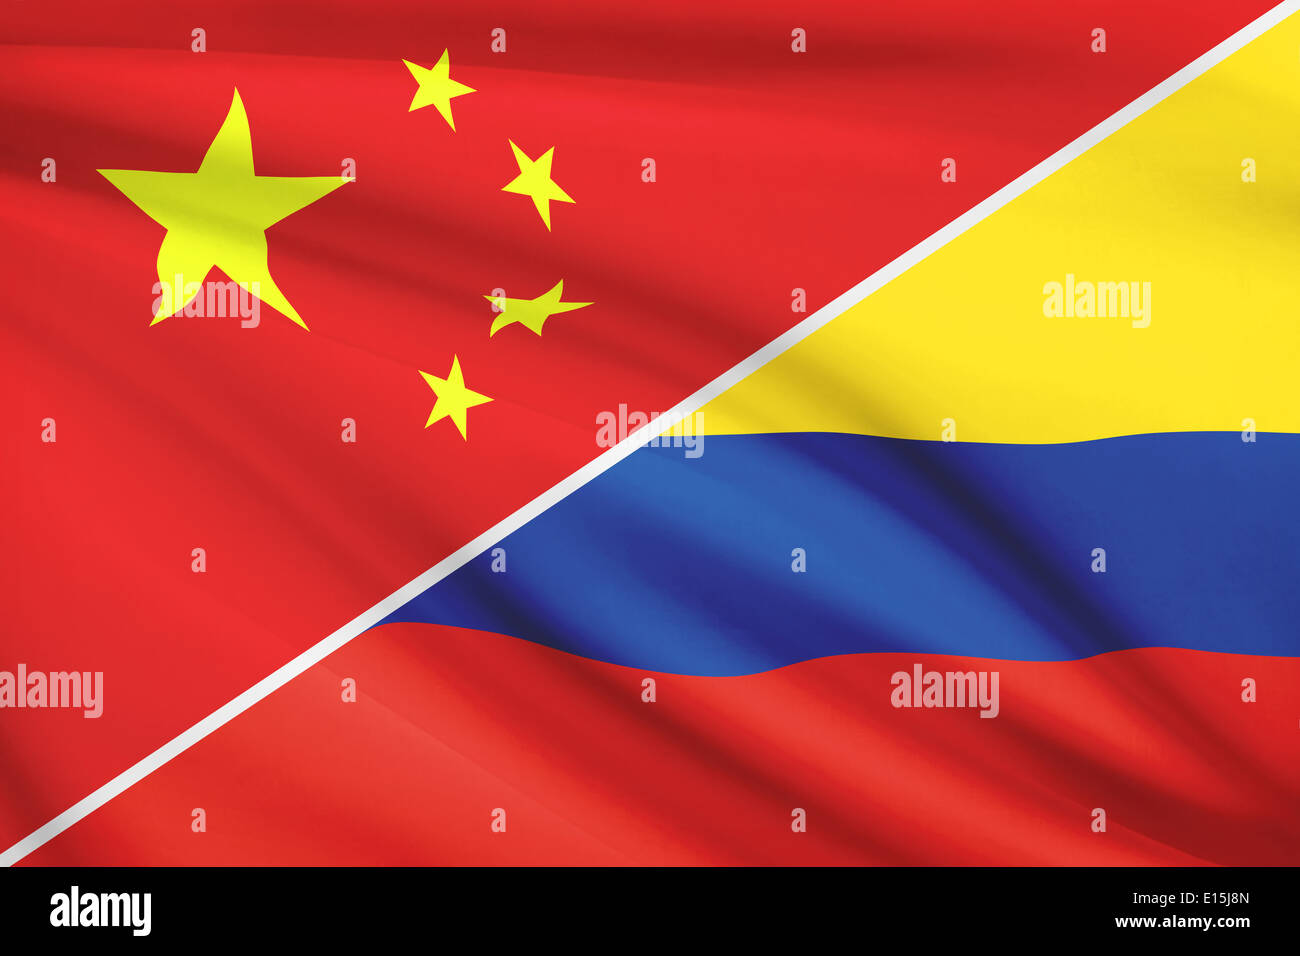 Flags of China and Republic of Colombia blowing in the wind. Part of a series. - Stock Image